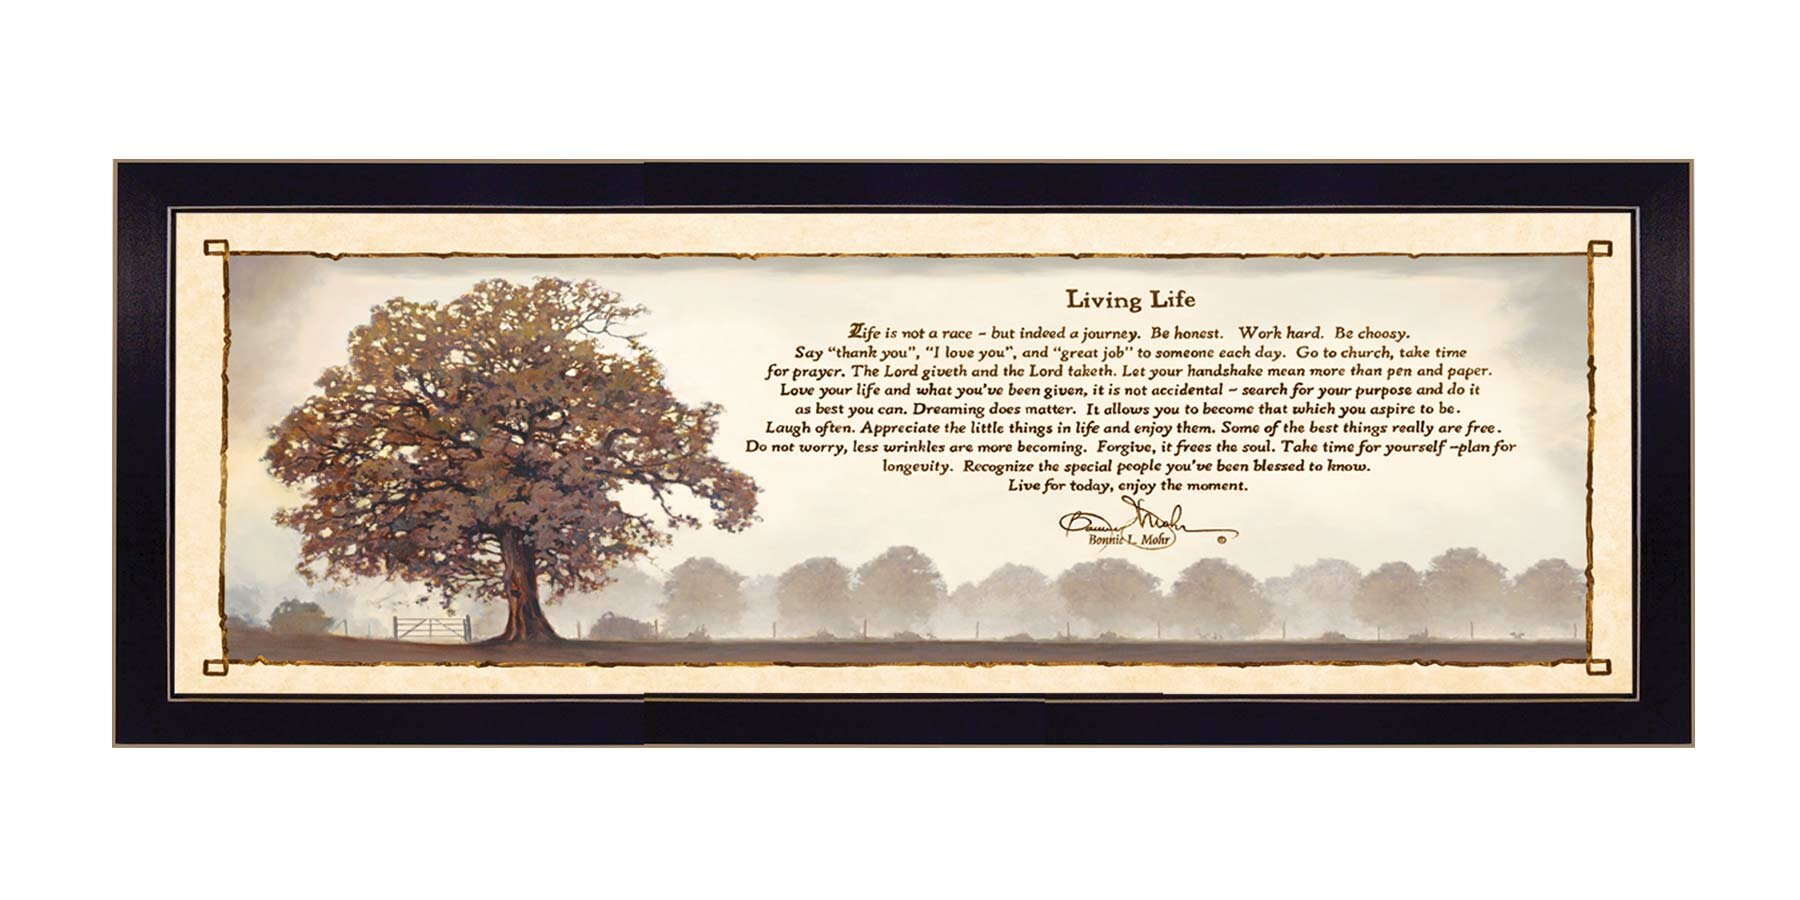 Trendy Decor 4U \'Living Life\' Framed Textual Art | Wayfair